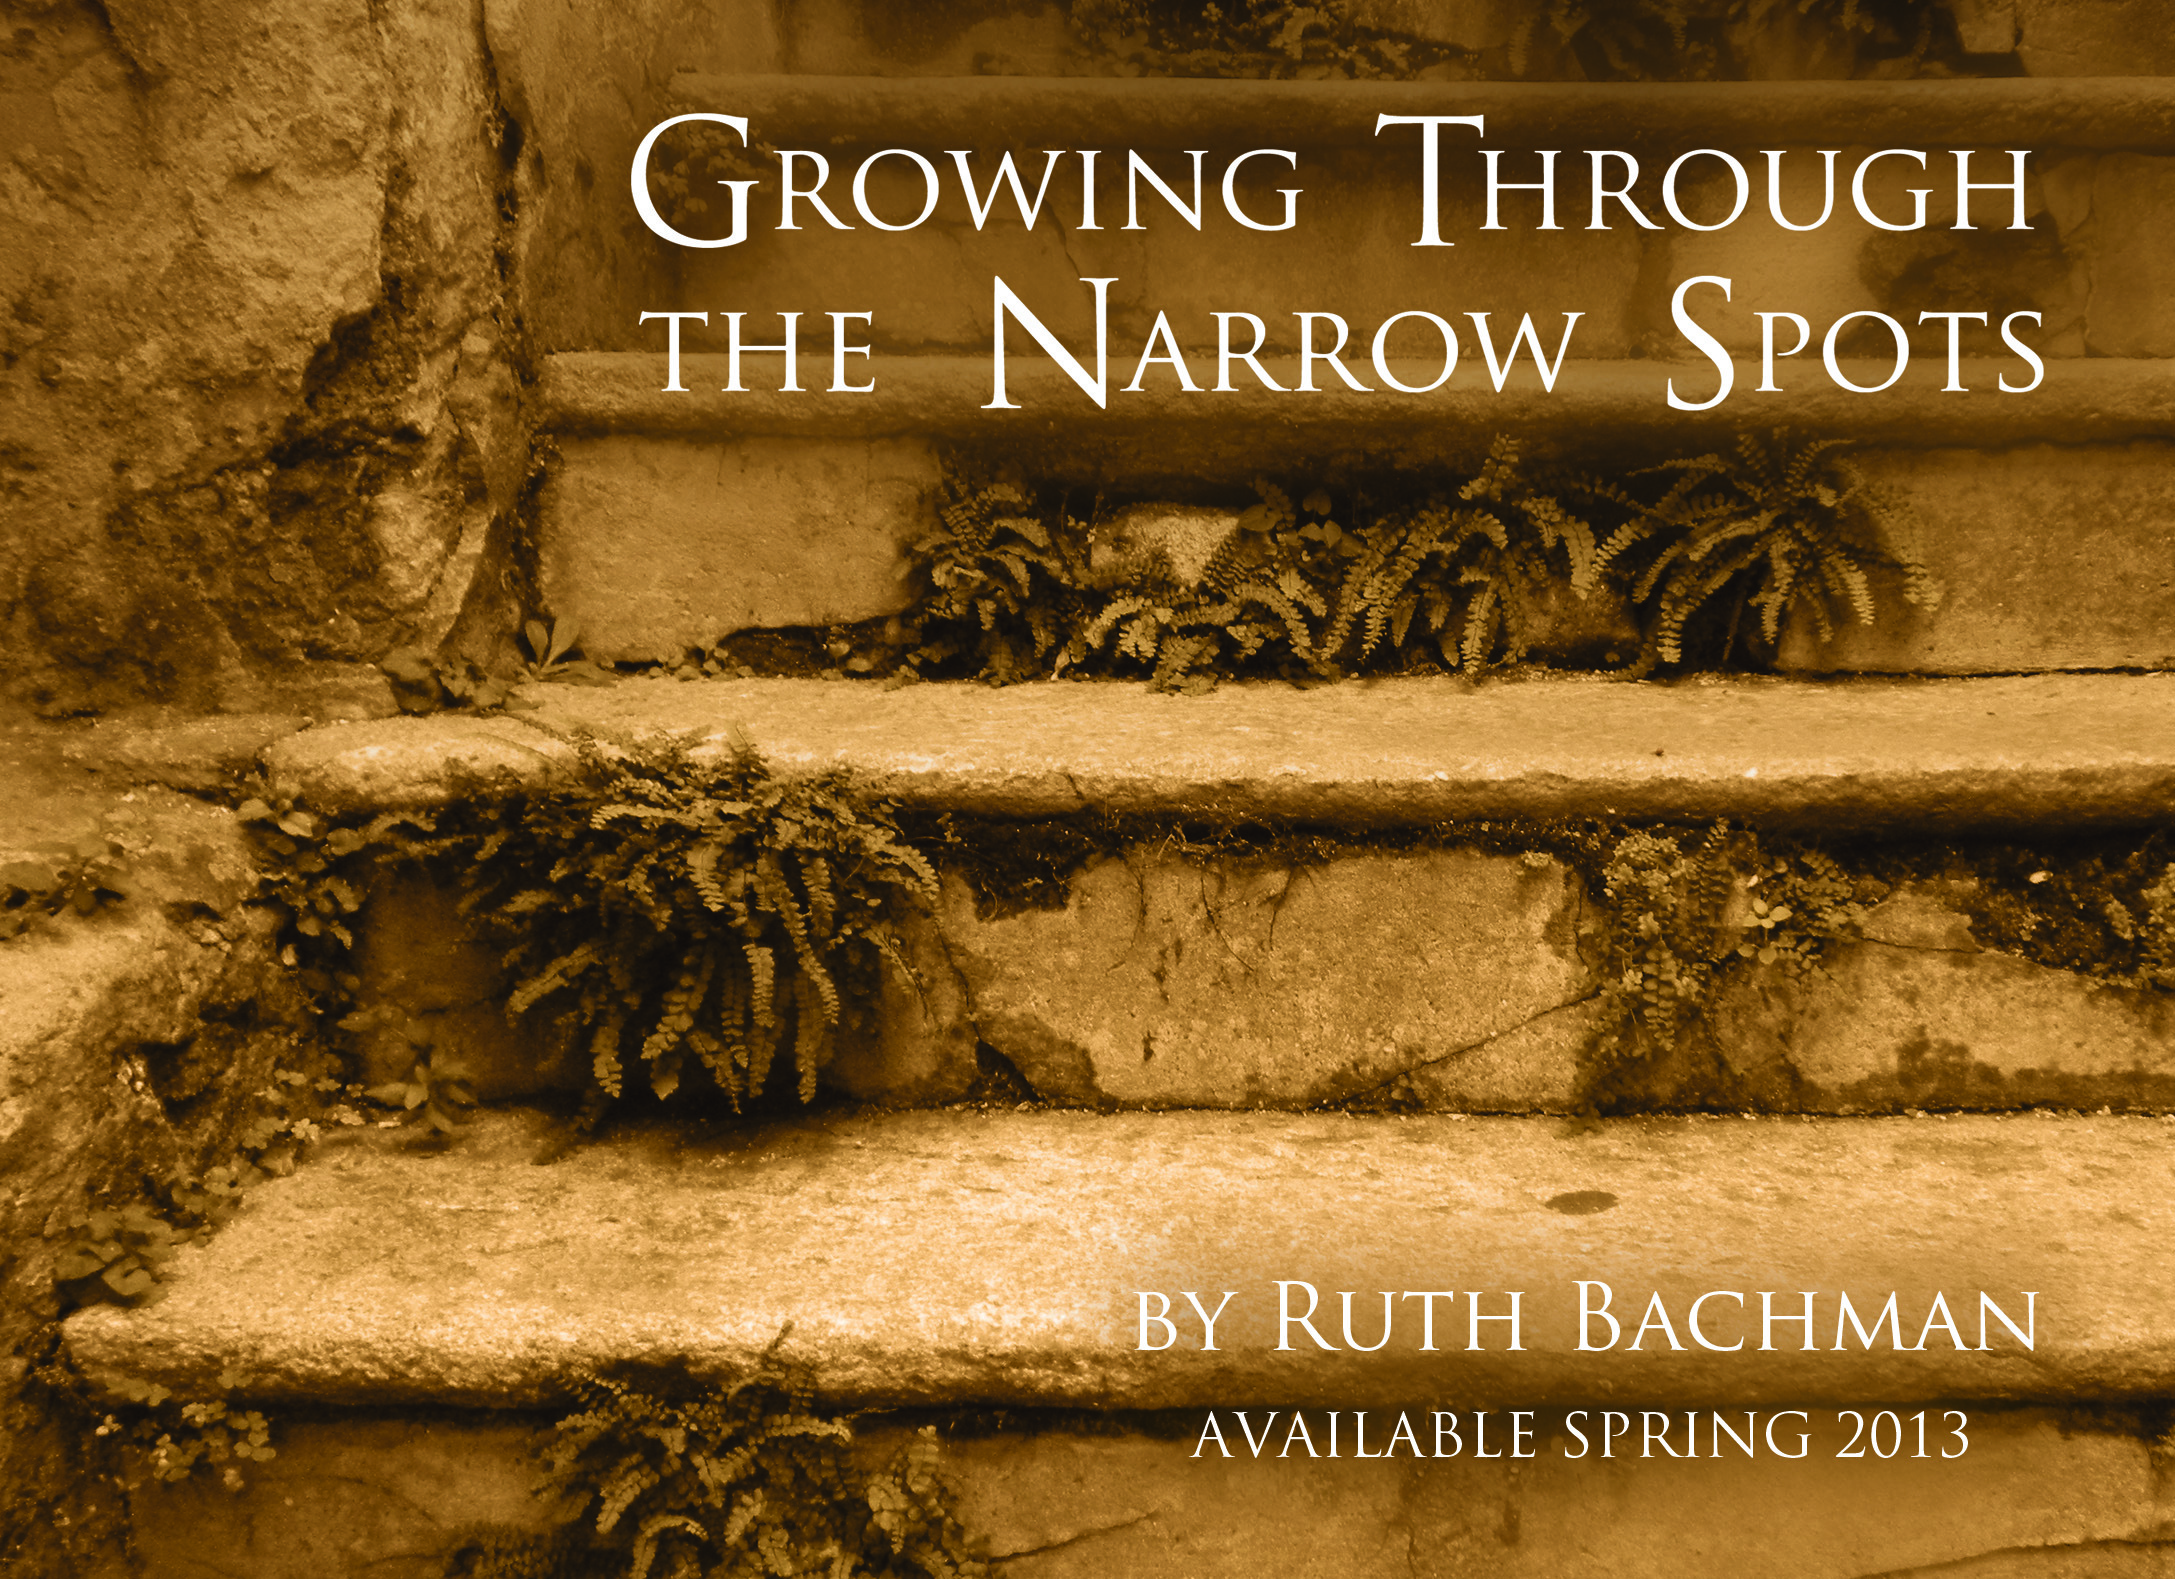 Growing Through the Narrow Spots